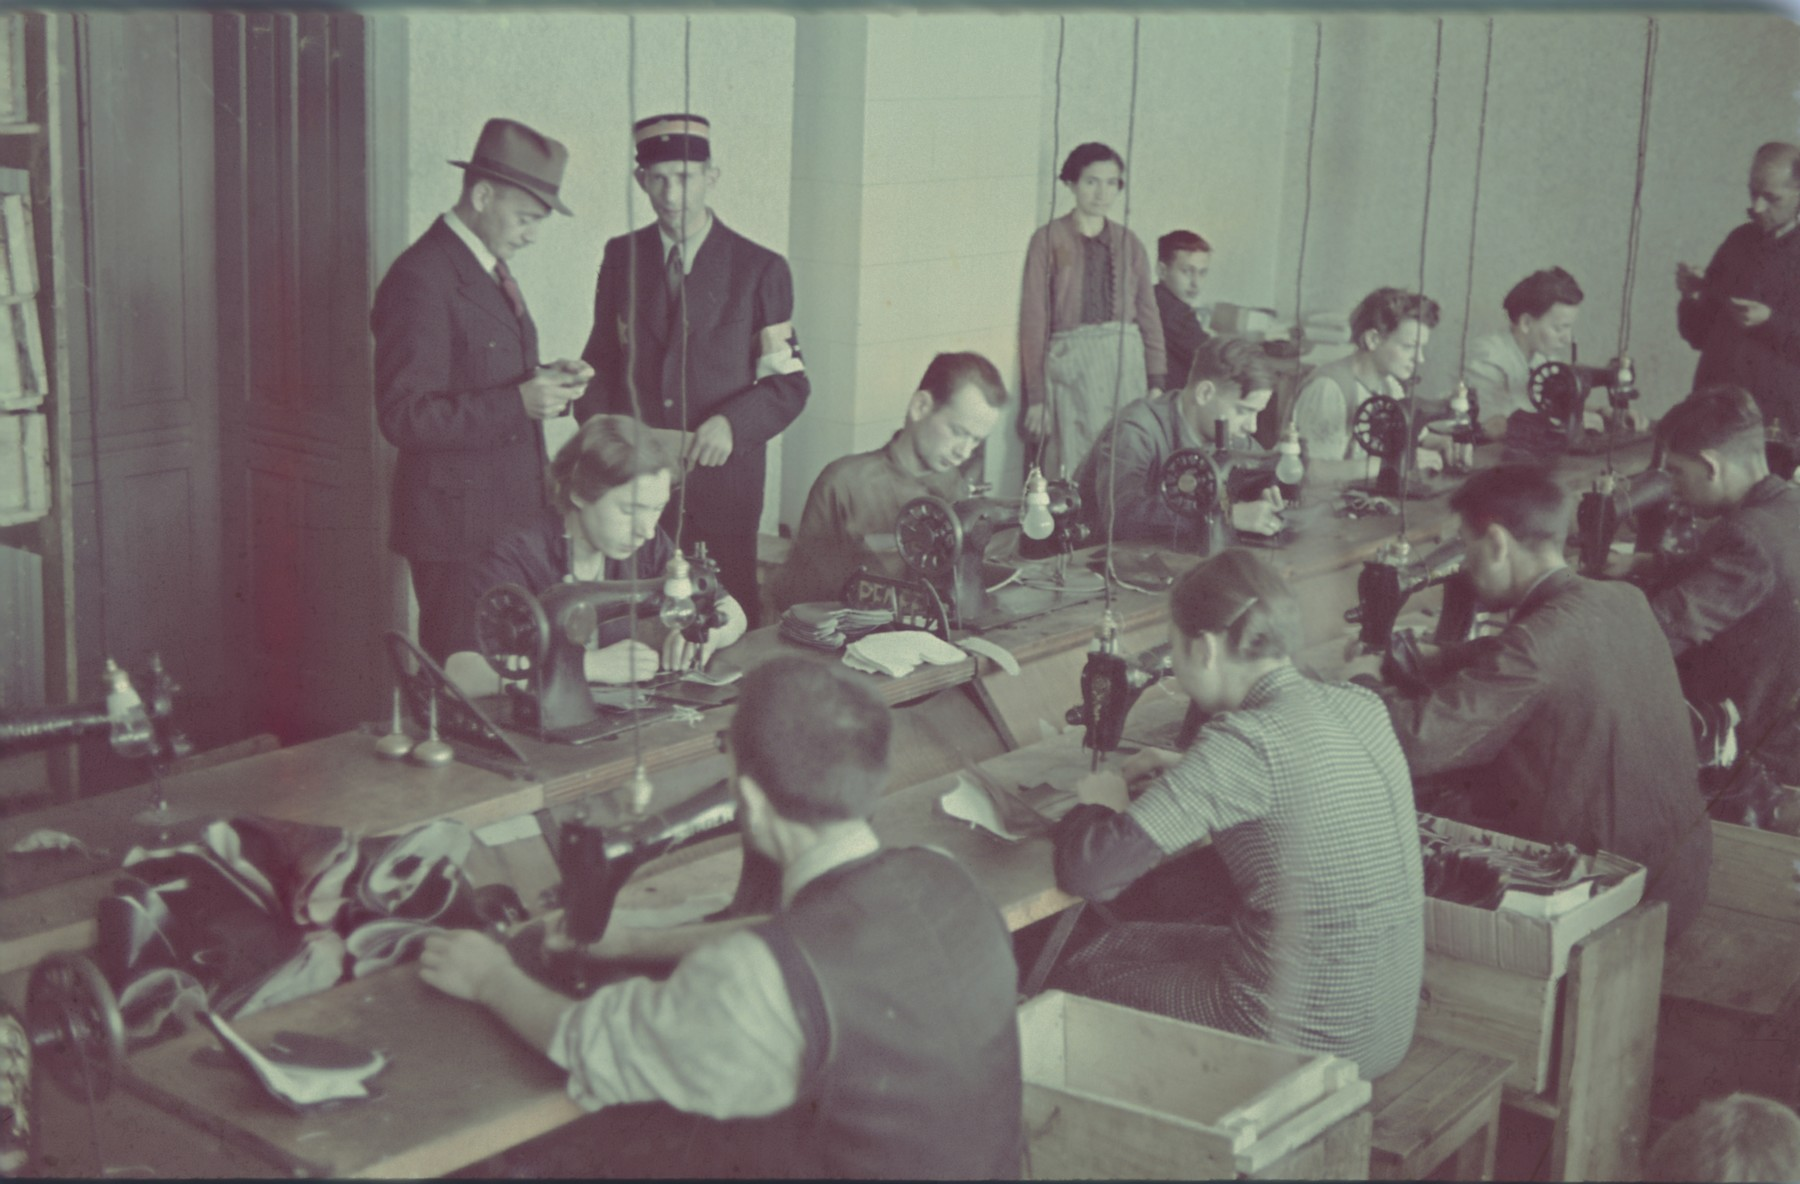 """A Jewish policeman accompanies a supervisor inspecting Jews sewing on machines in the saddle-making workshop in the Lodz ghetto.  Original German caption: """"Litzmannstadt-Getto, Sattlerei"""" (saddlery)."""